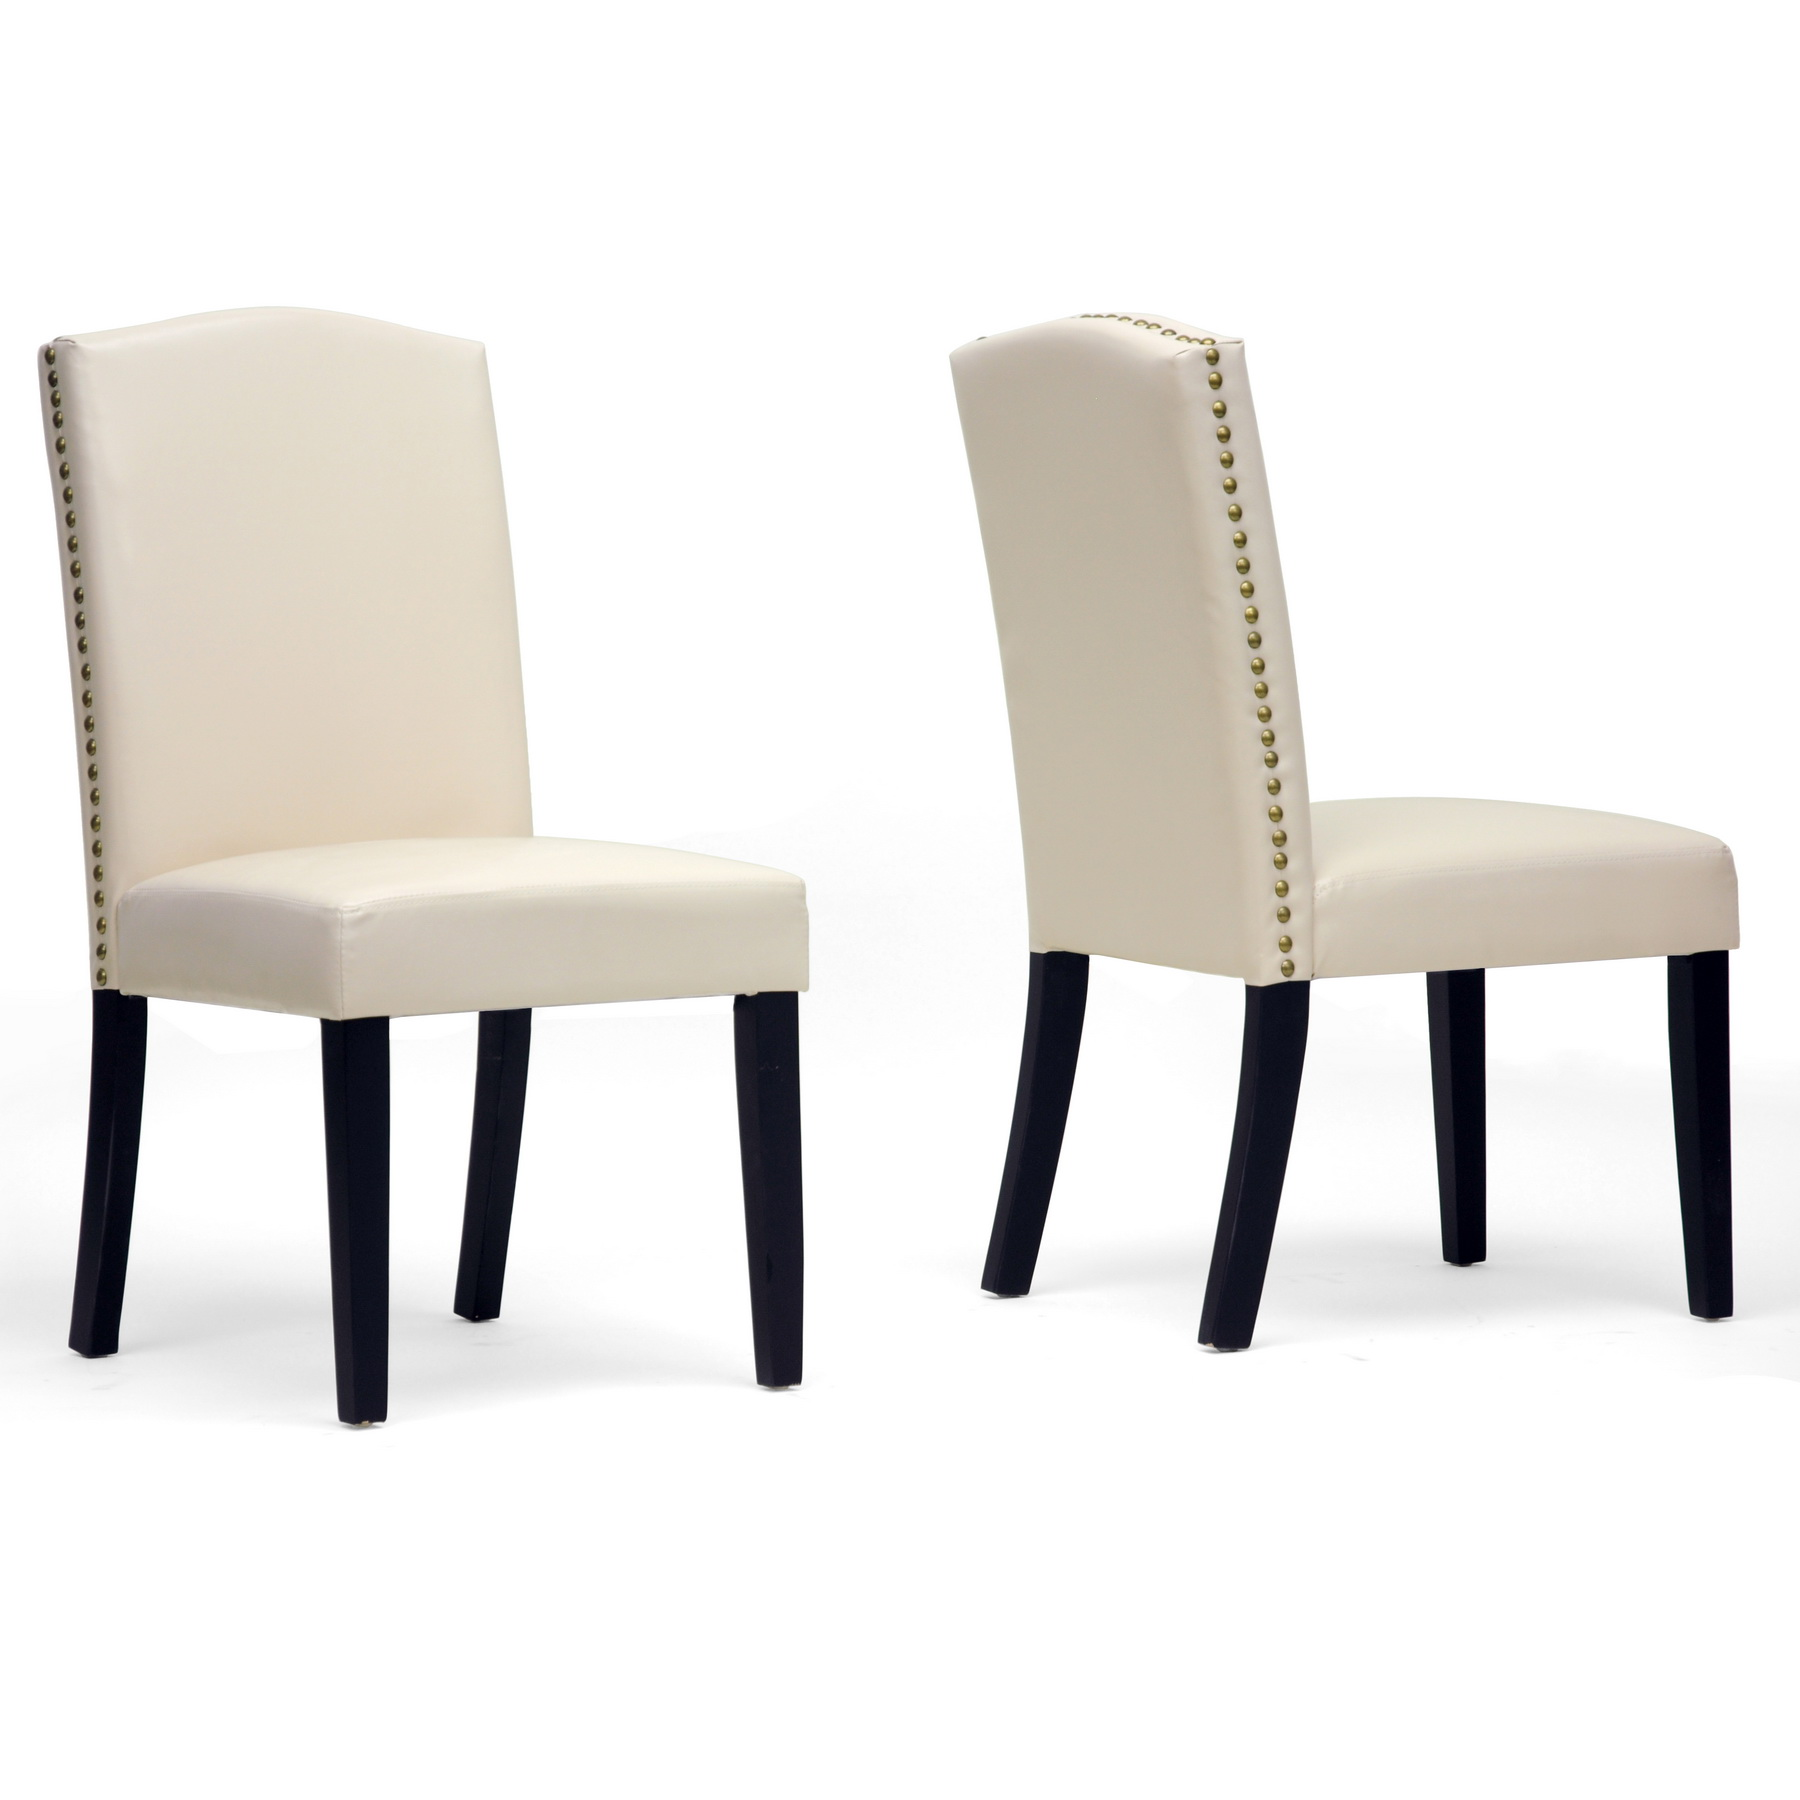 White upholstered dining chair displaying infinite for White chair design